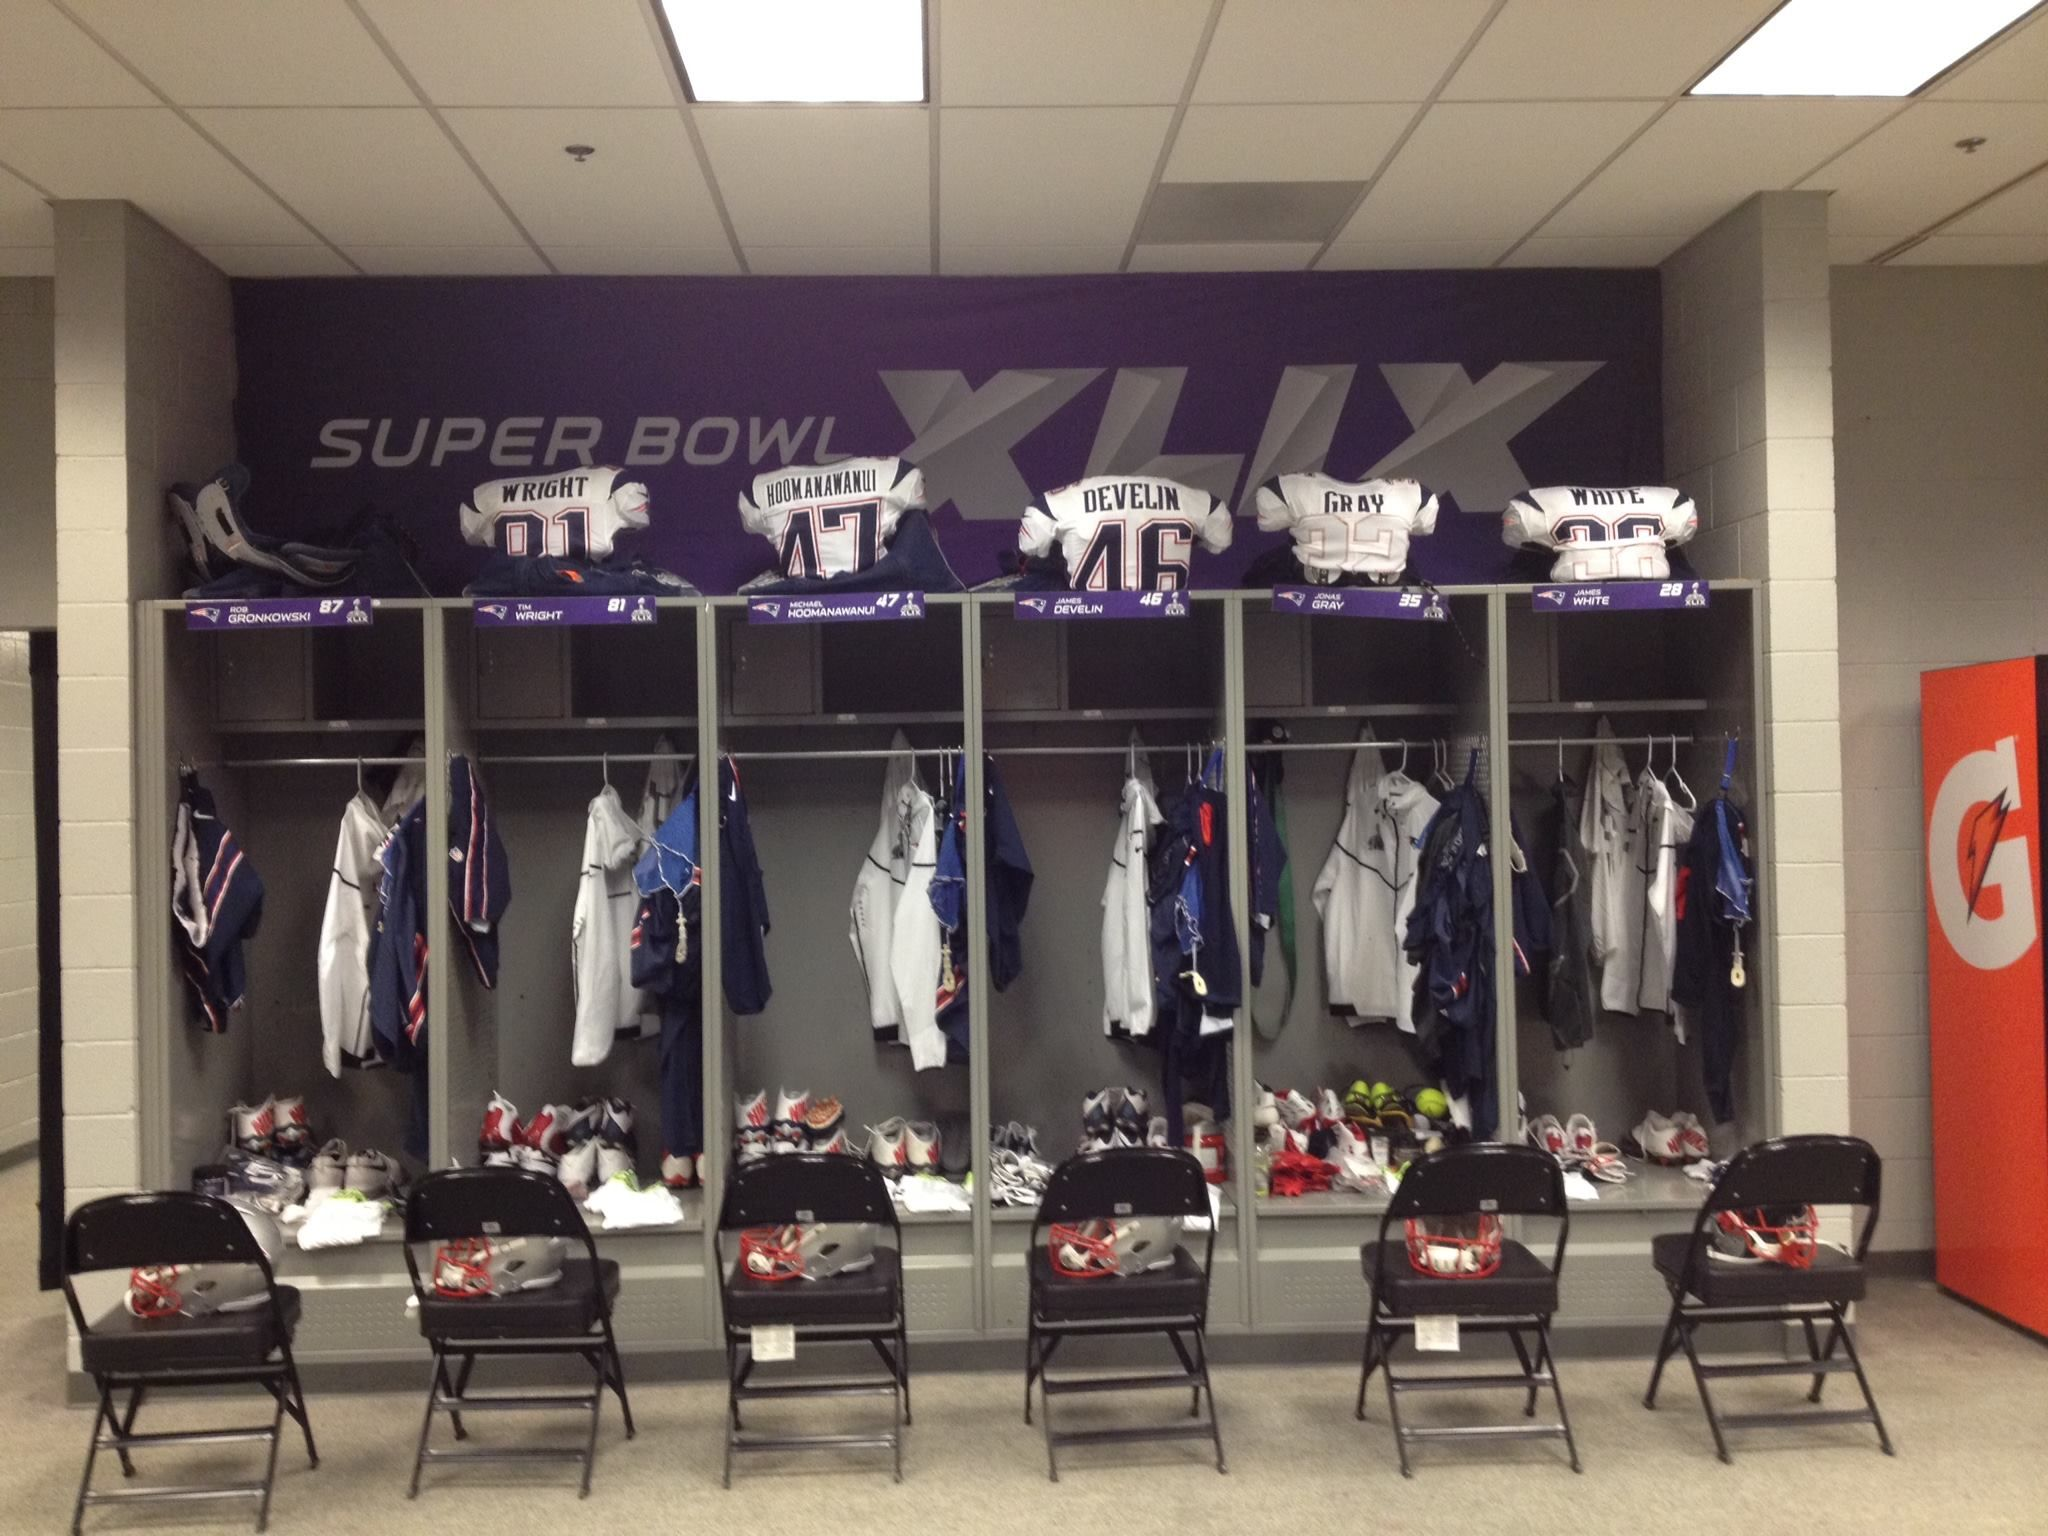 Super Bowl Locker Room Super Bowl Super Bowl Xlix New England Patriots